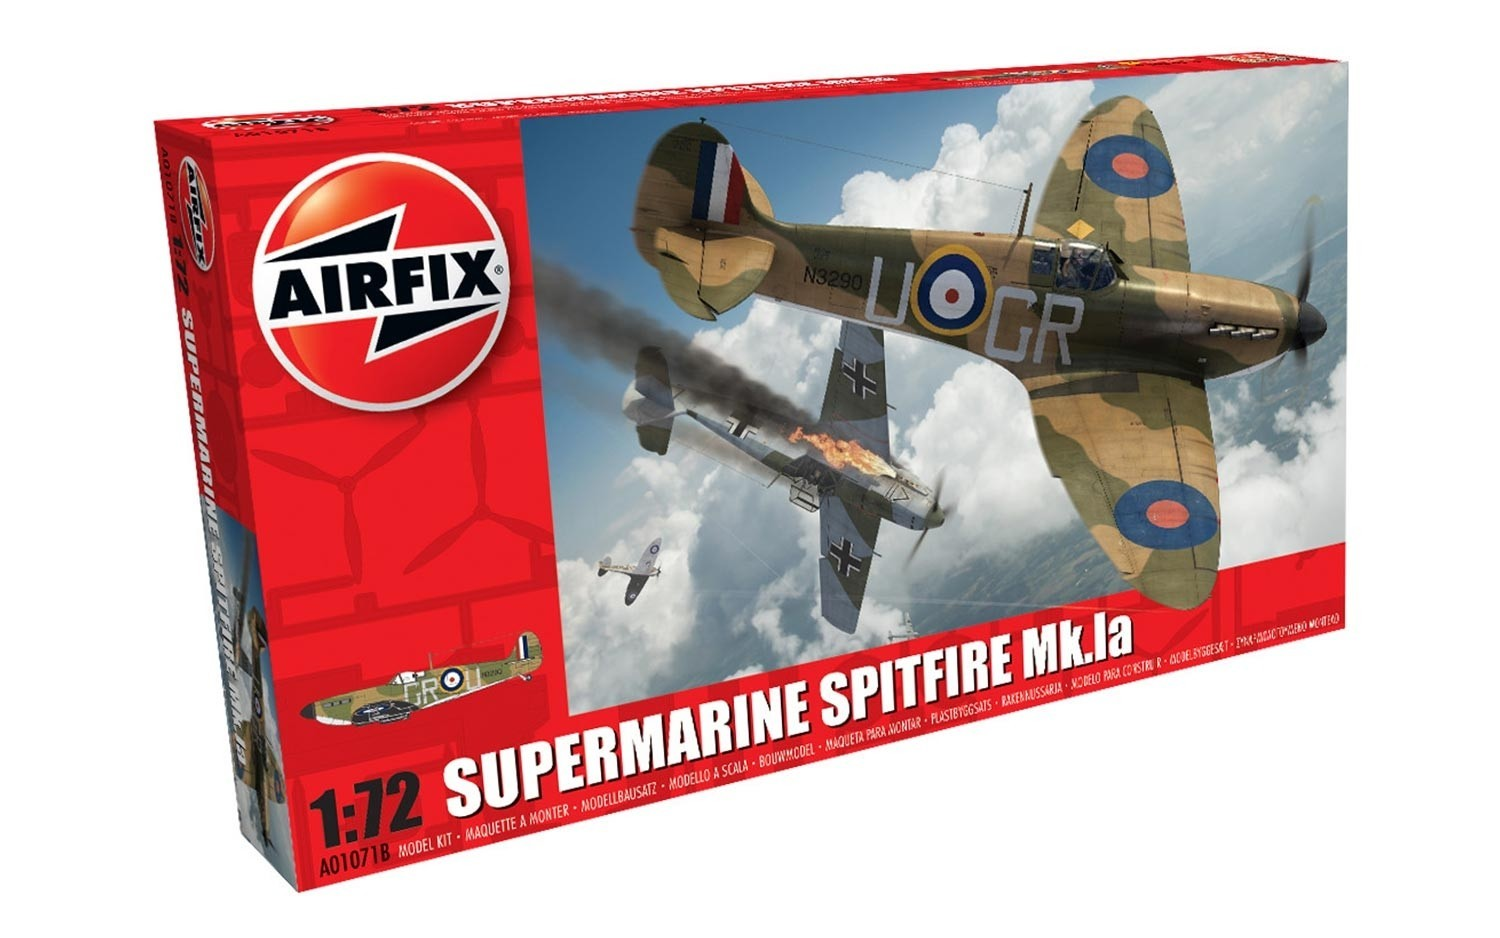 Airfix 1:72 Supermarine Spitfire Mk.Ia Scale Model Kit image